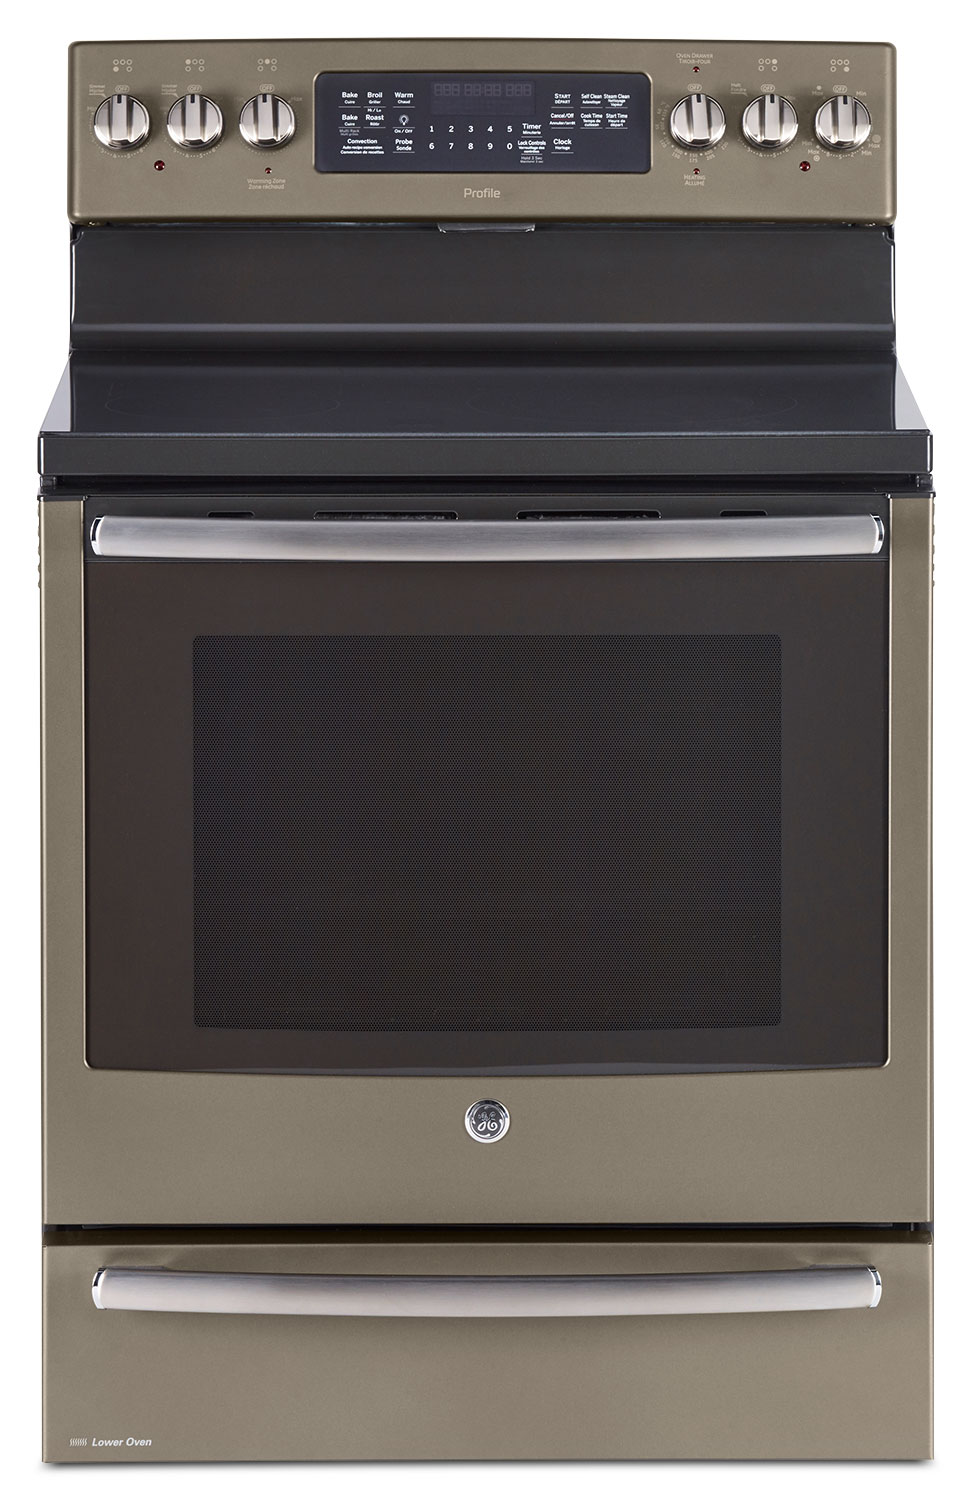 Cooking Products - GE 6.2 Cu. Ft. Freestanding Electric Range with Baking Drawer – PCB985EKES